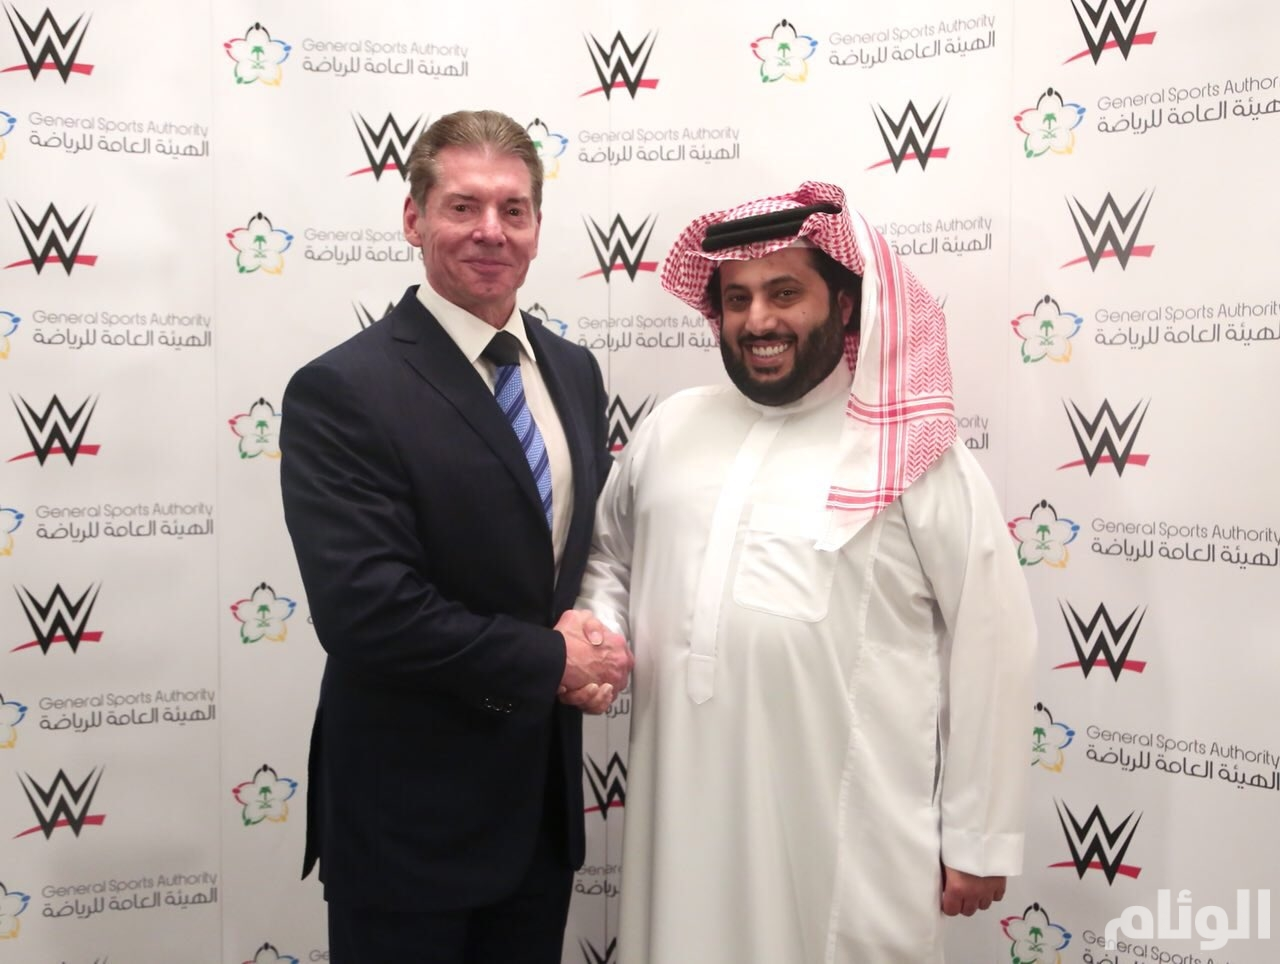 Image result for vince mcmahon saudi arabia""